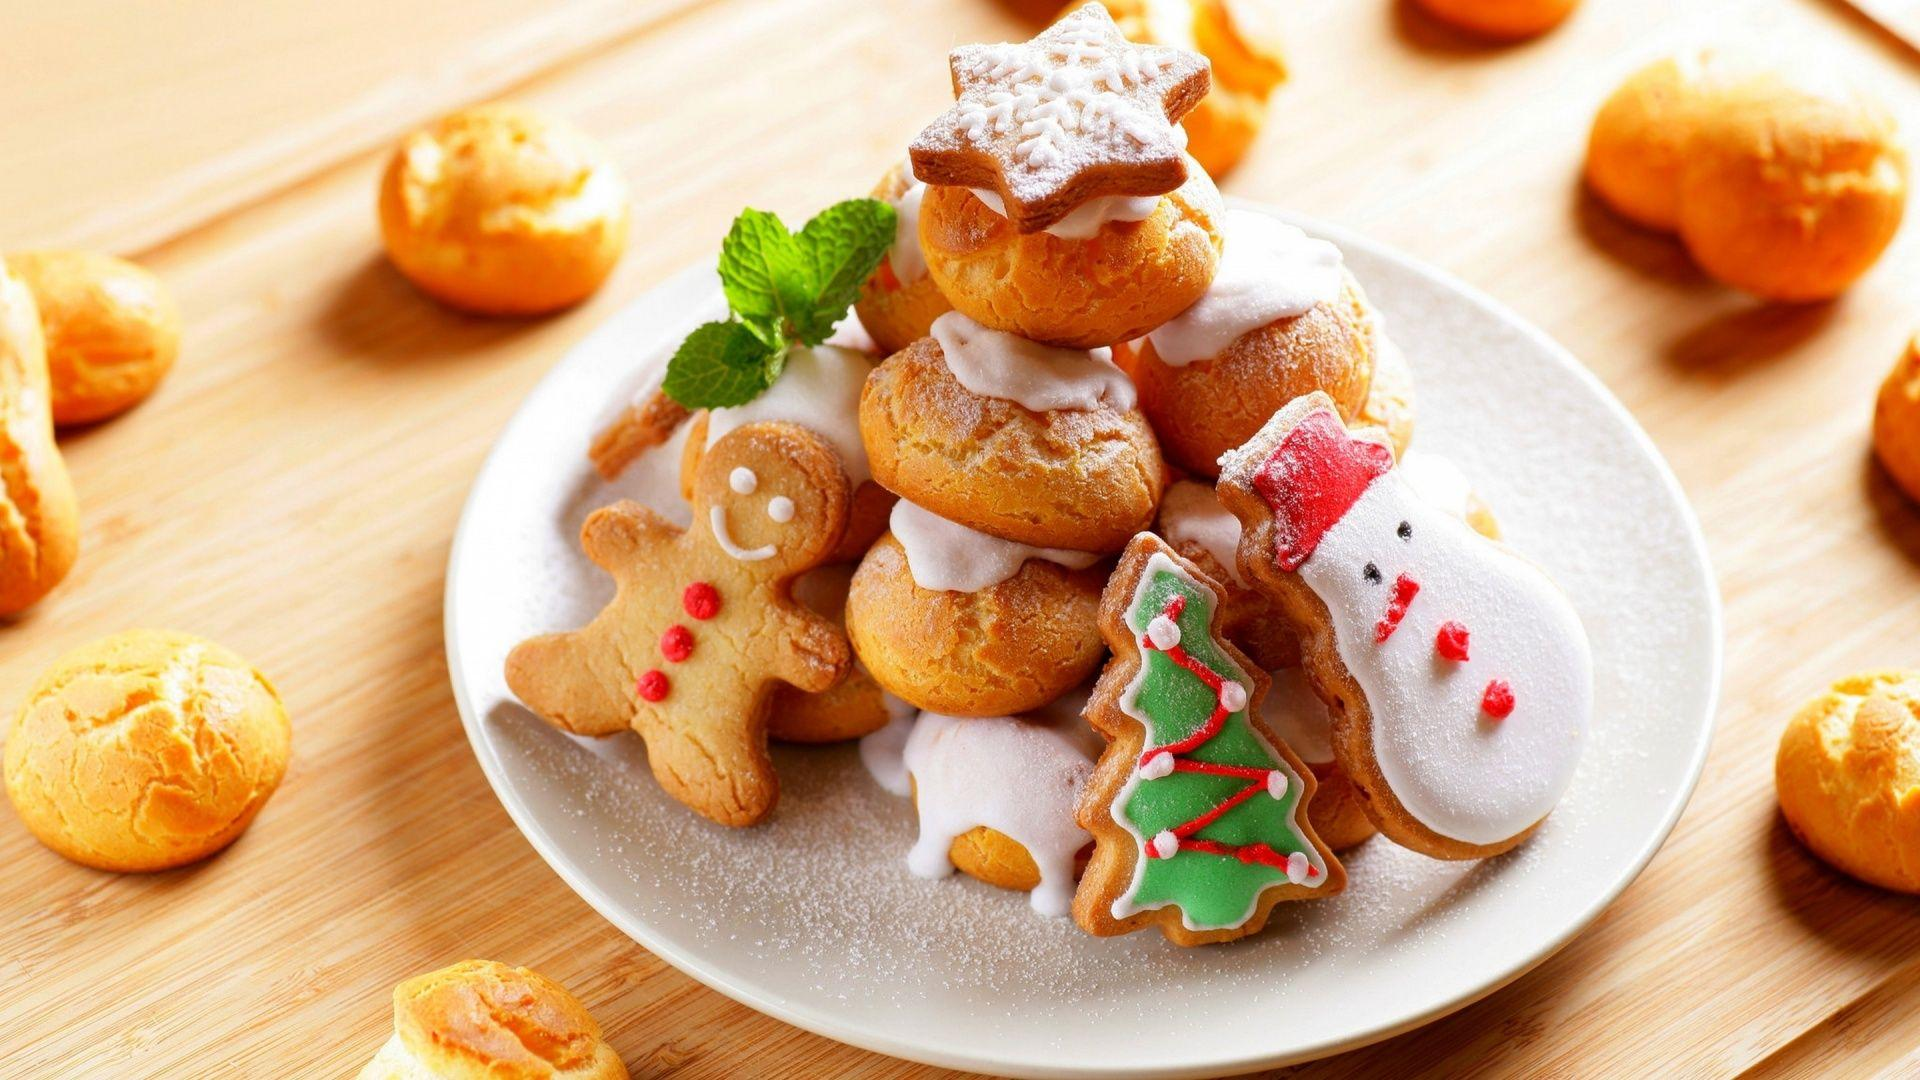 Christmas New Year Cookies Food Wallpapers - 1920x1080 - 592041